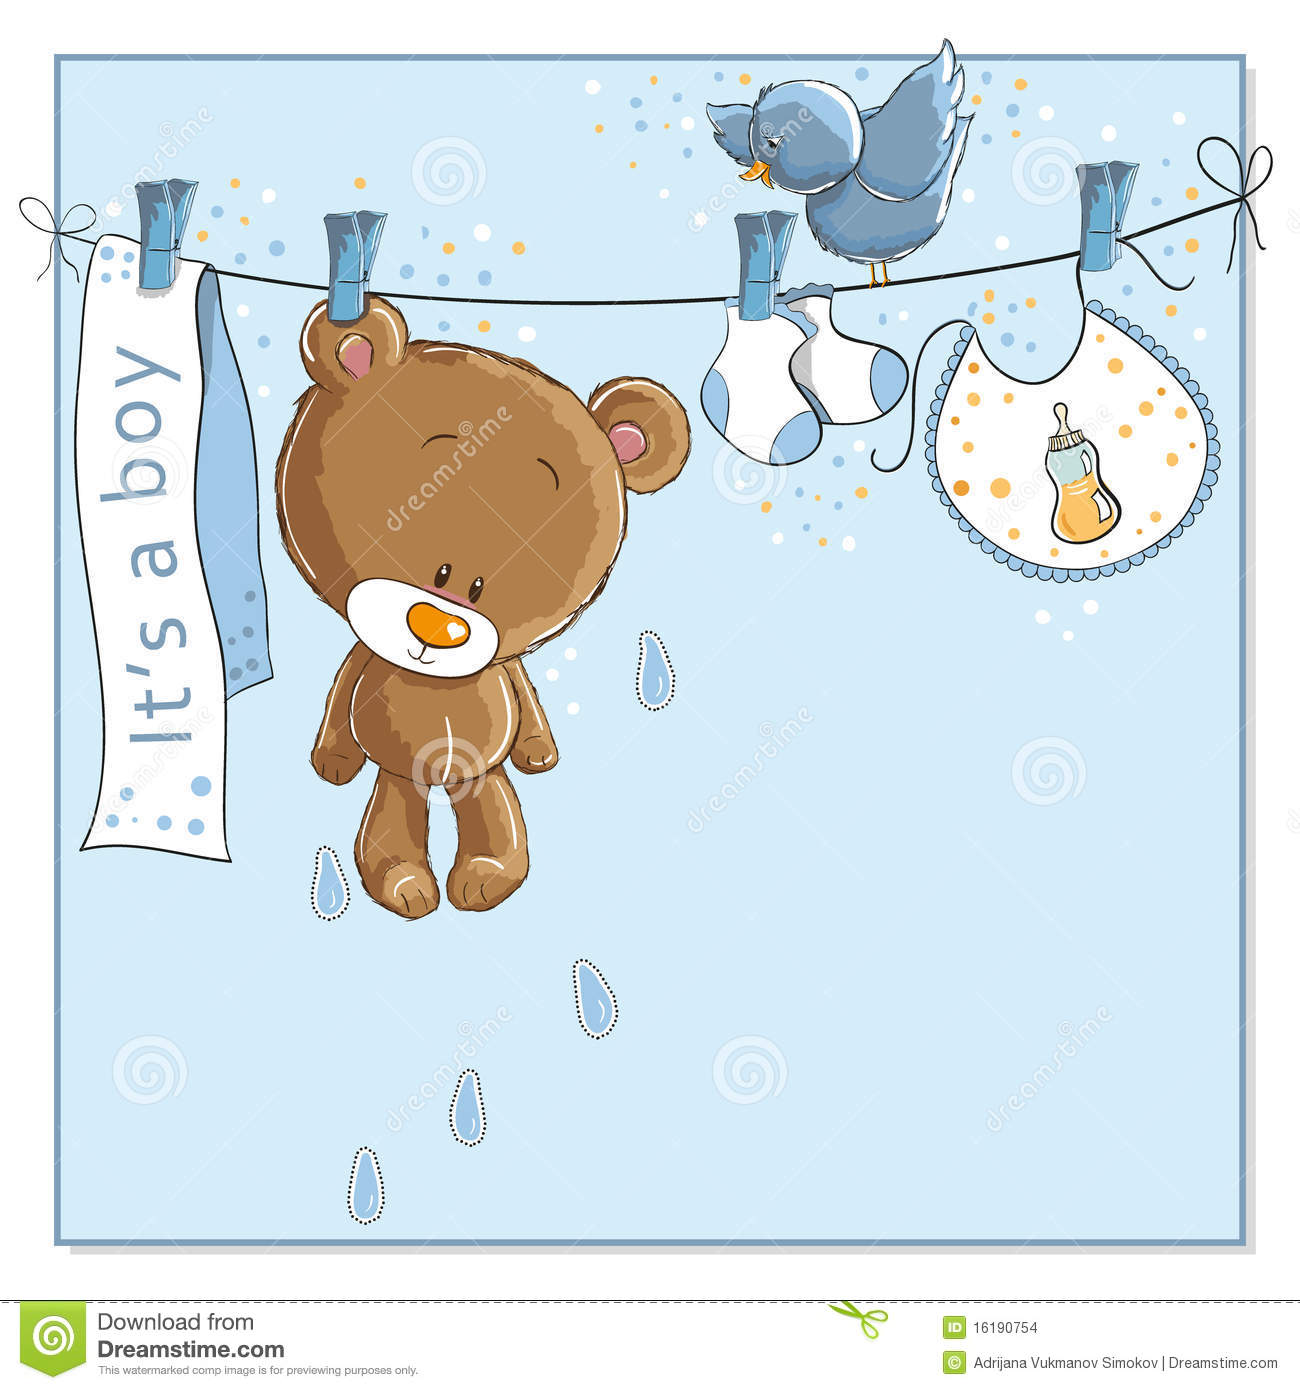 It's A Boy - Baby Announcement Card Stock Images - Image: 16190754